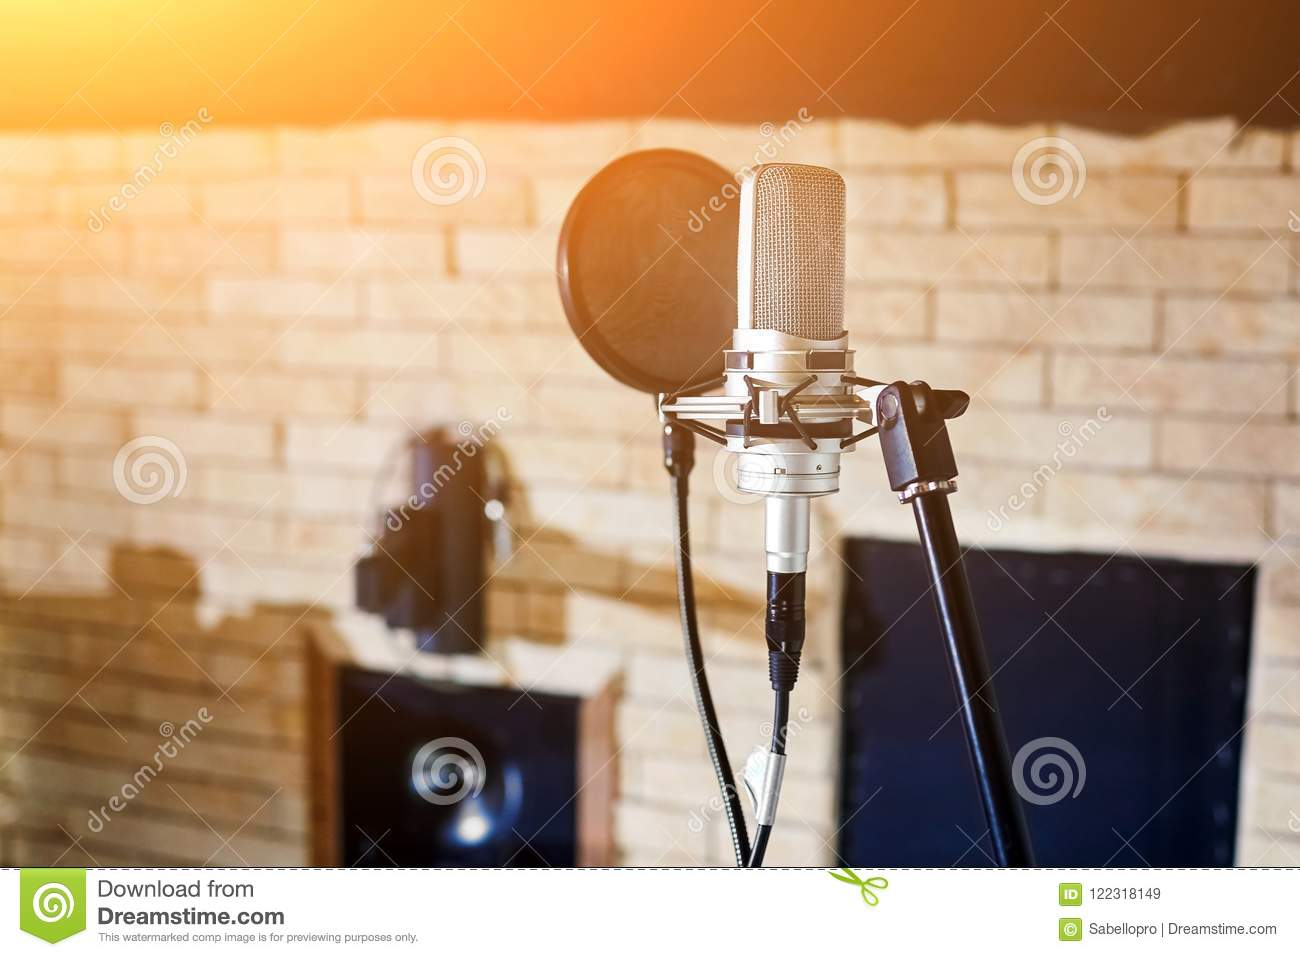 Music studio. Silver condenser microphone with pop filter